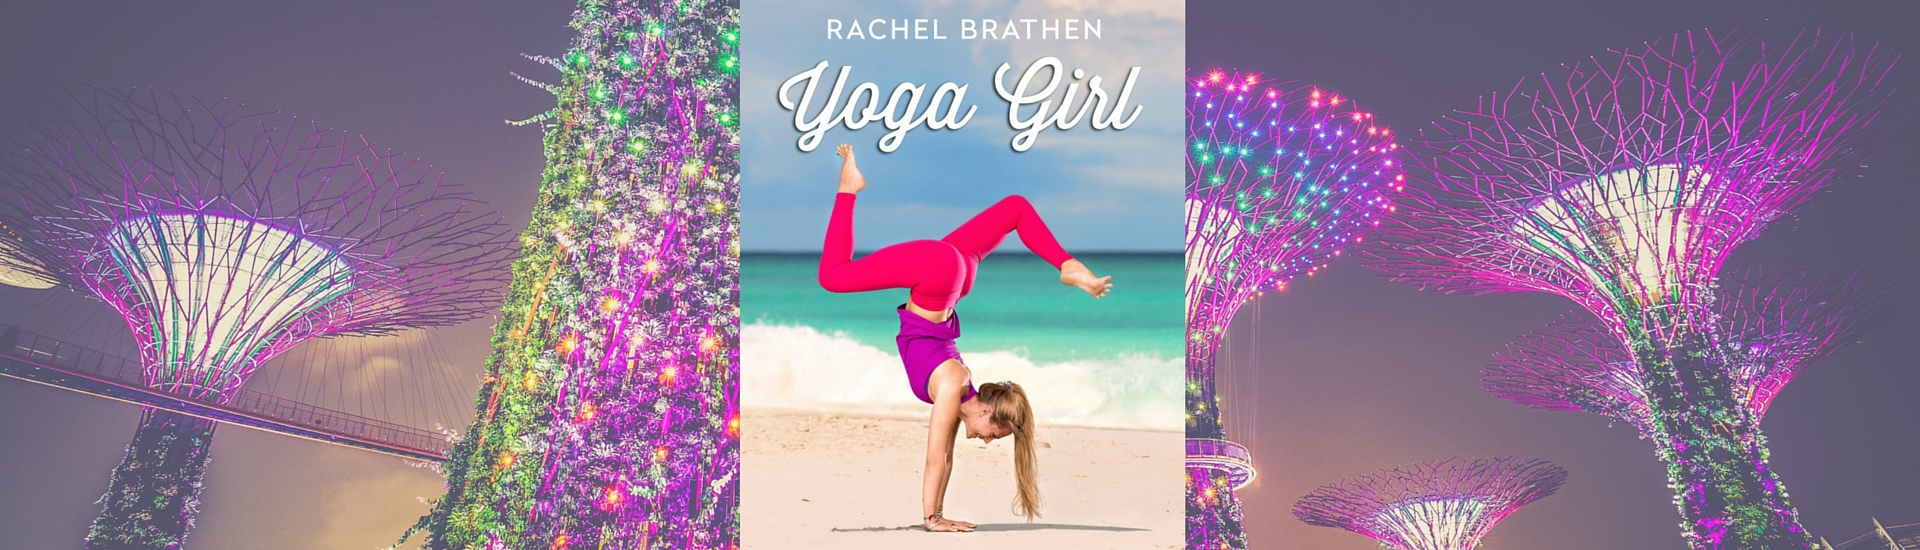 YogaShelf Book Review: Yoga Girl